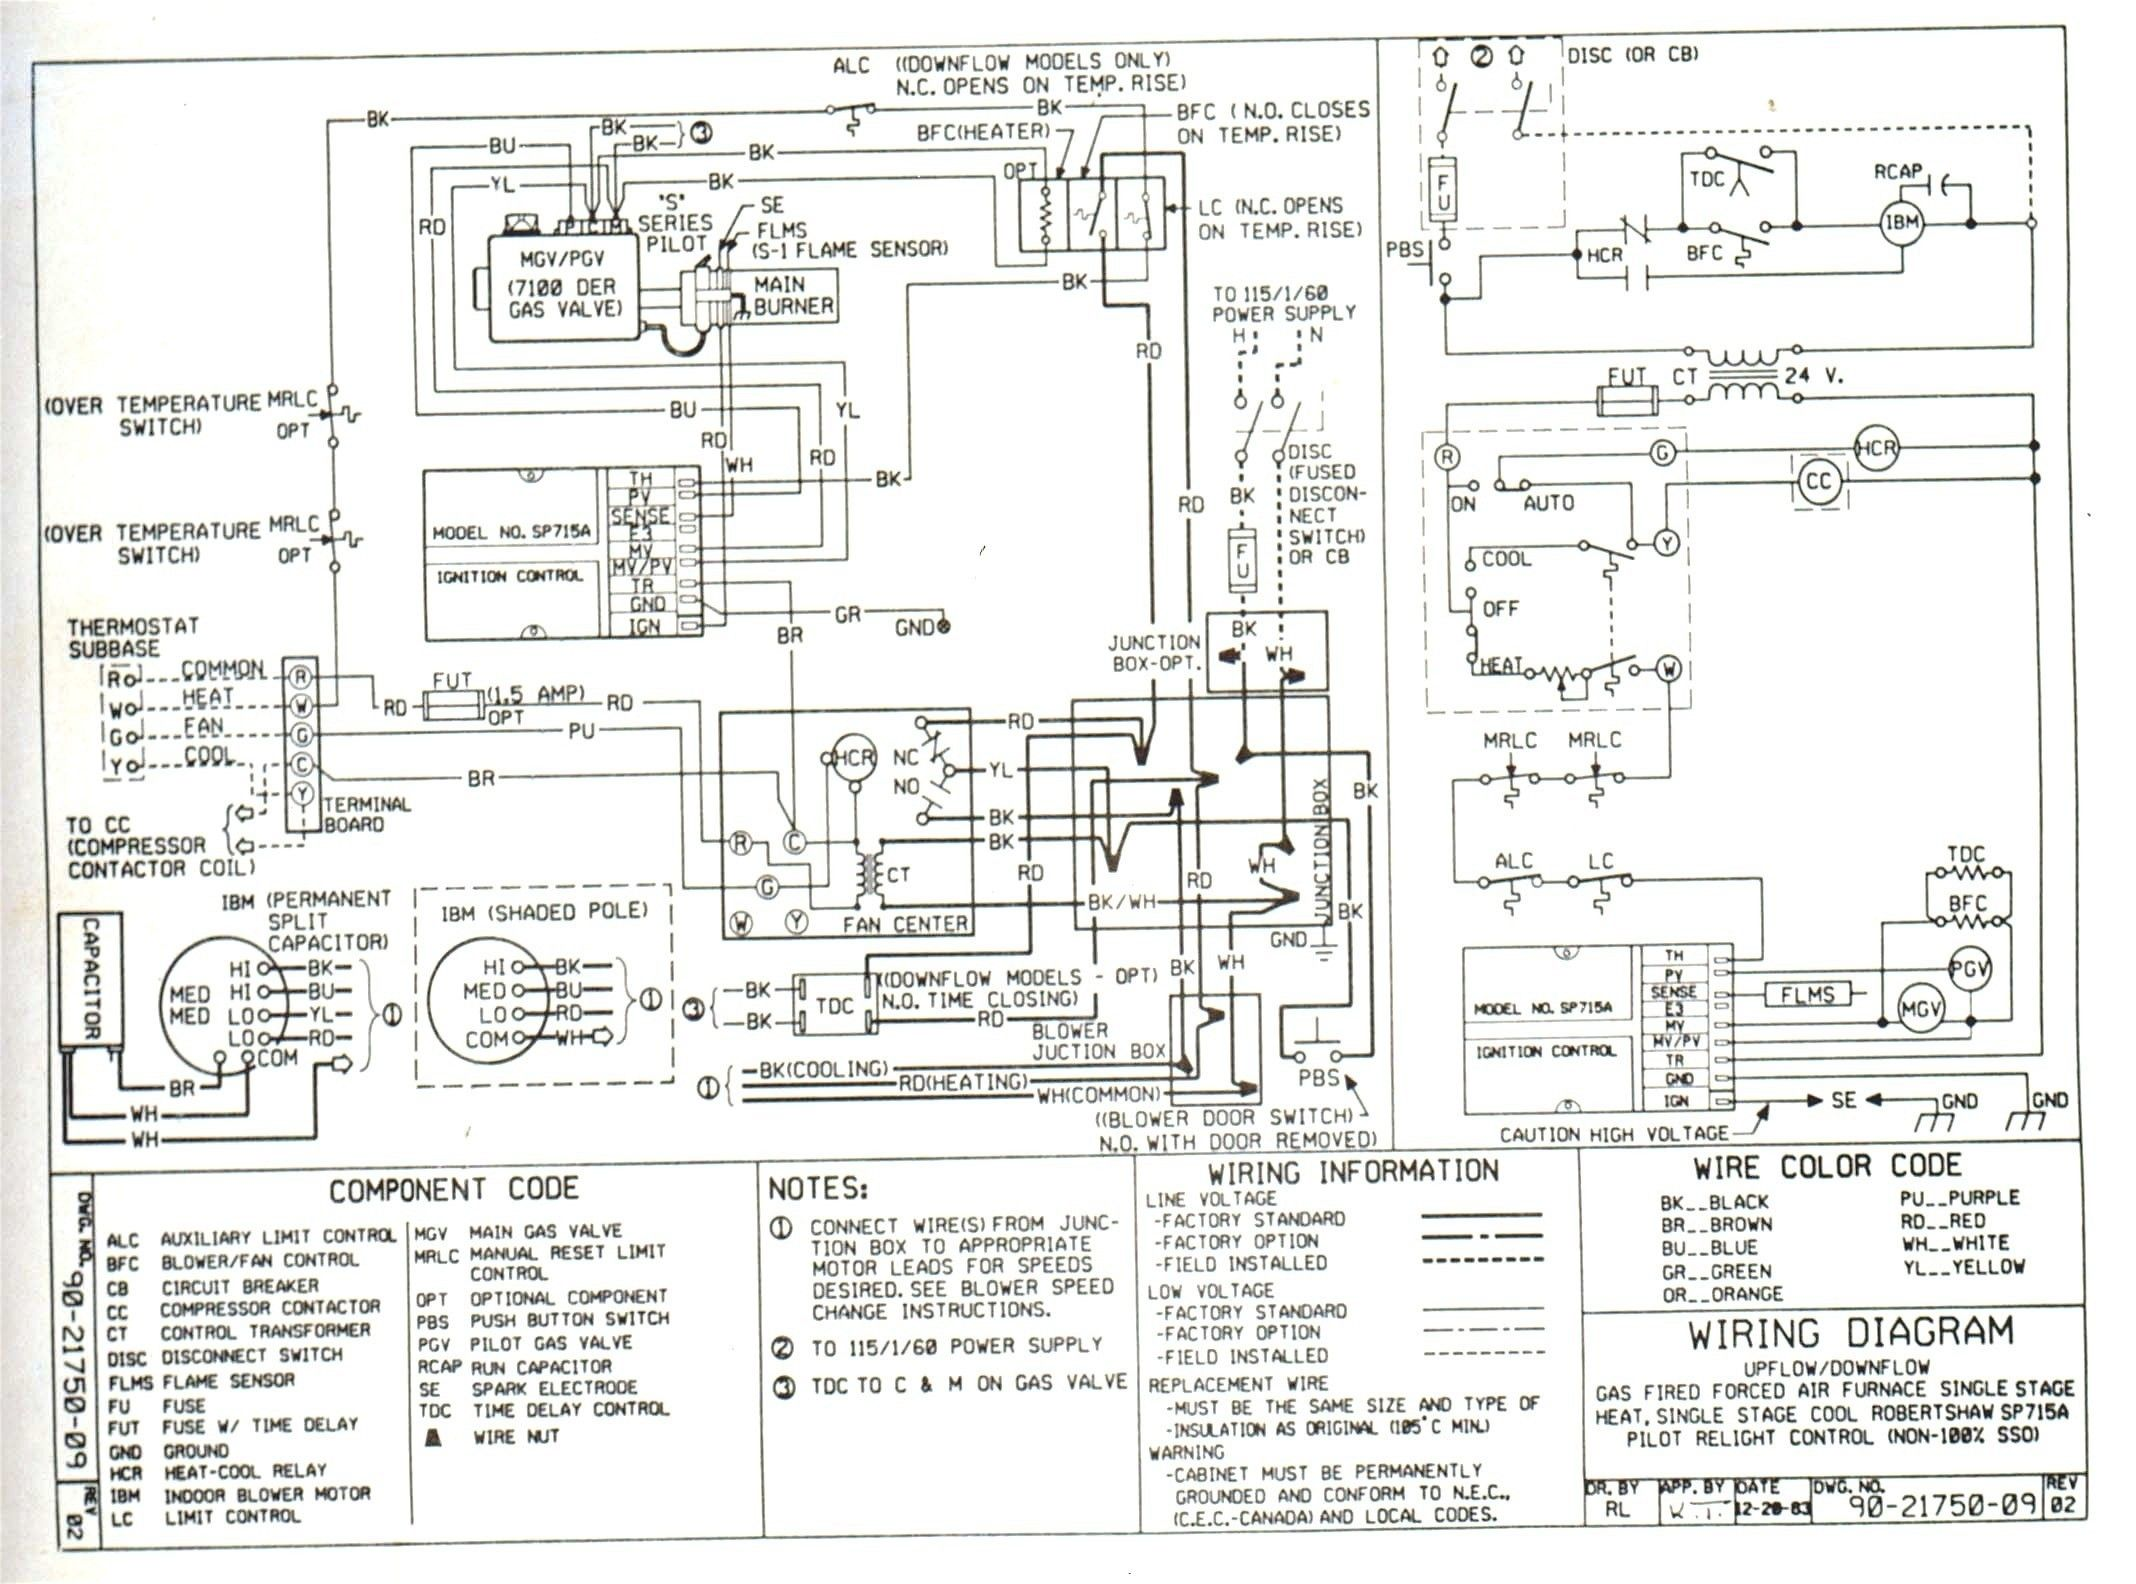 Unique Wiring Diagram For Square D Lighting Contactor Electrical Diagram Trailer Wiring Diagram Diagram